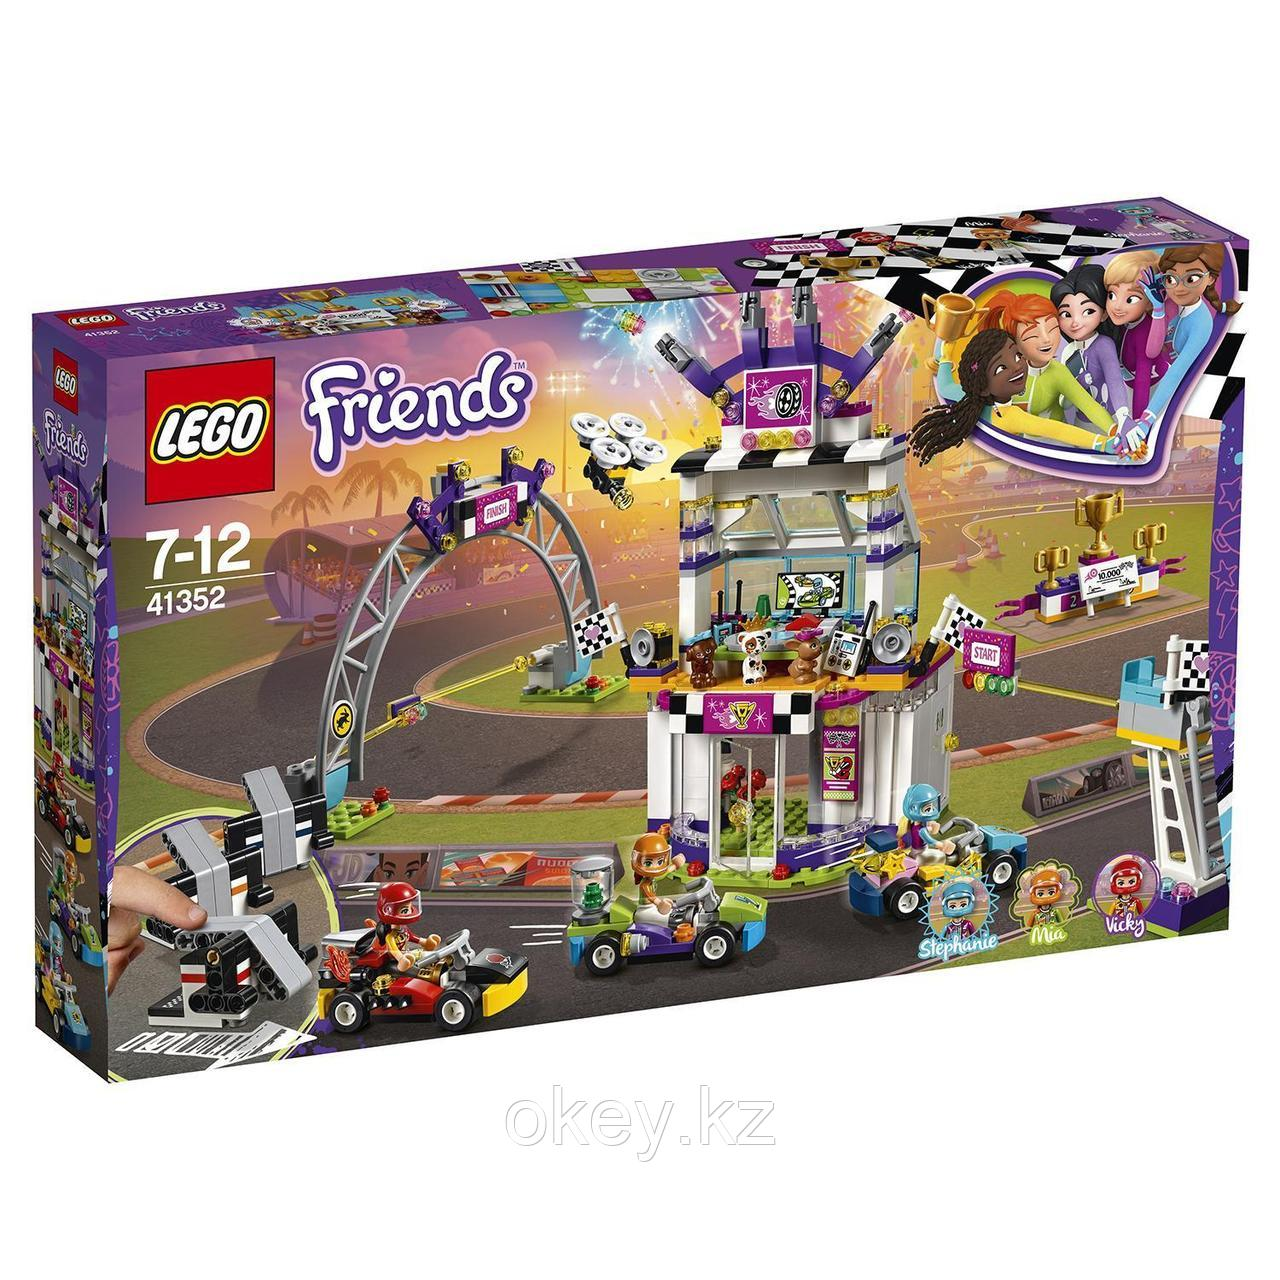 LEGO Friends: Большая гонка 41352